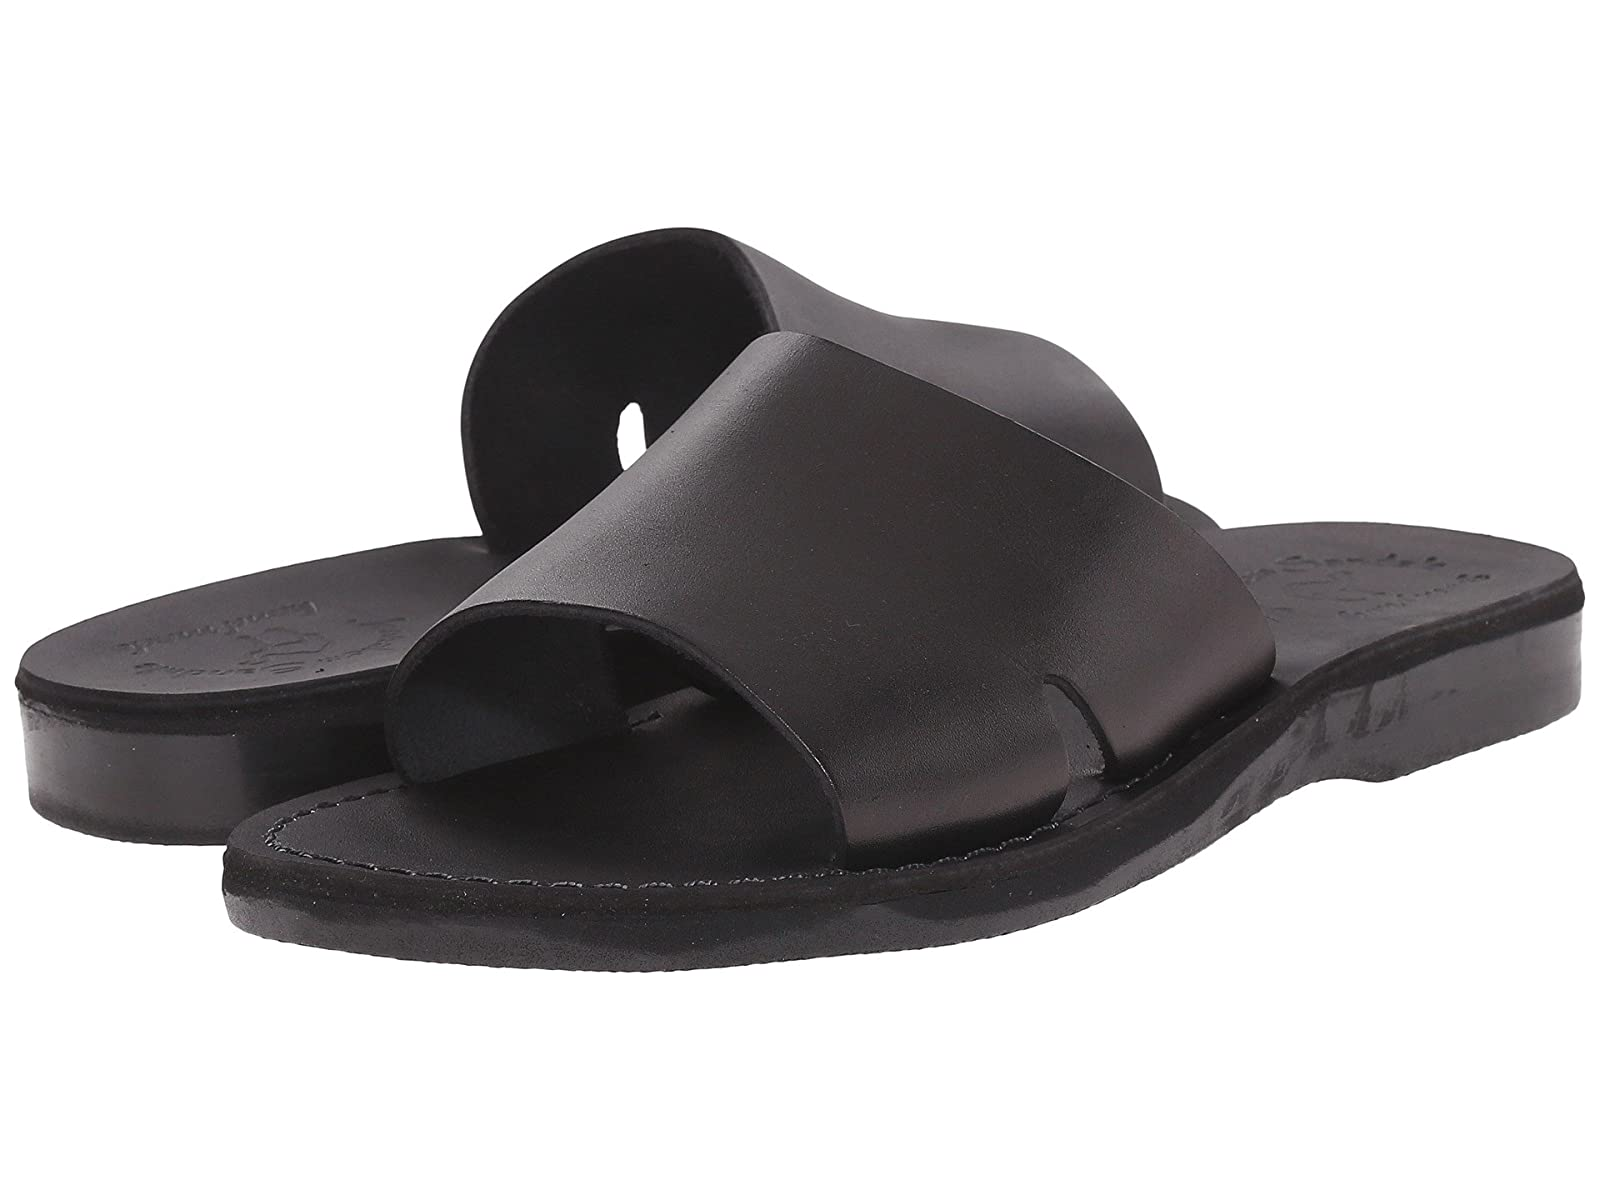 Jerusalem Sandals Bashan - MensAtmospheric grades have affordable shoes